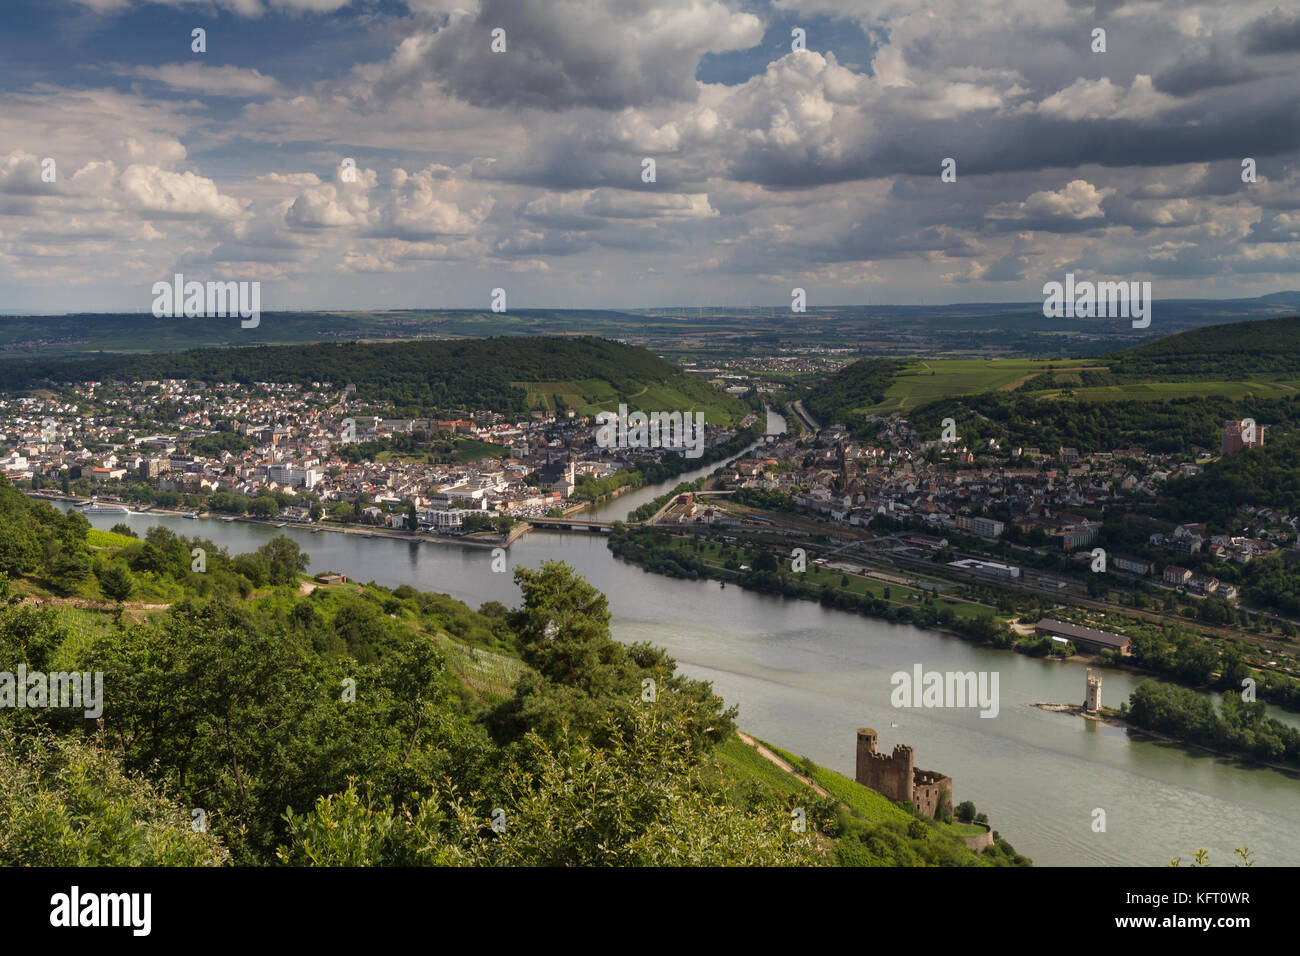 Lookout Rossel - Viewpoint of the Rhine Valley, Ruedesheim, Germany - Stock Image